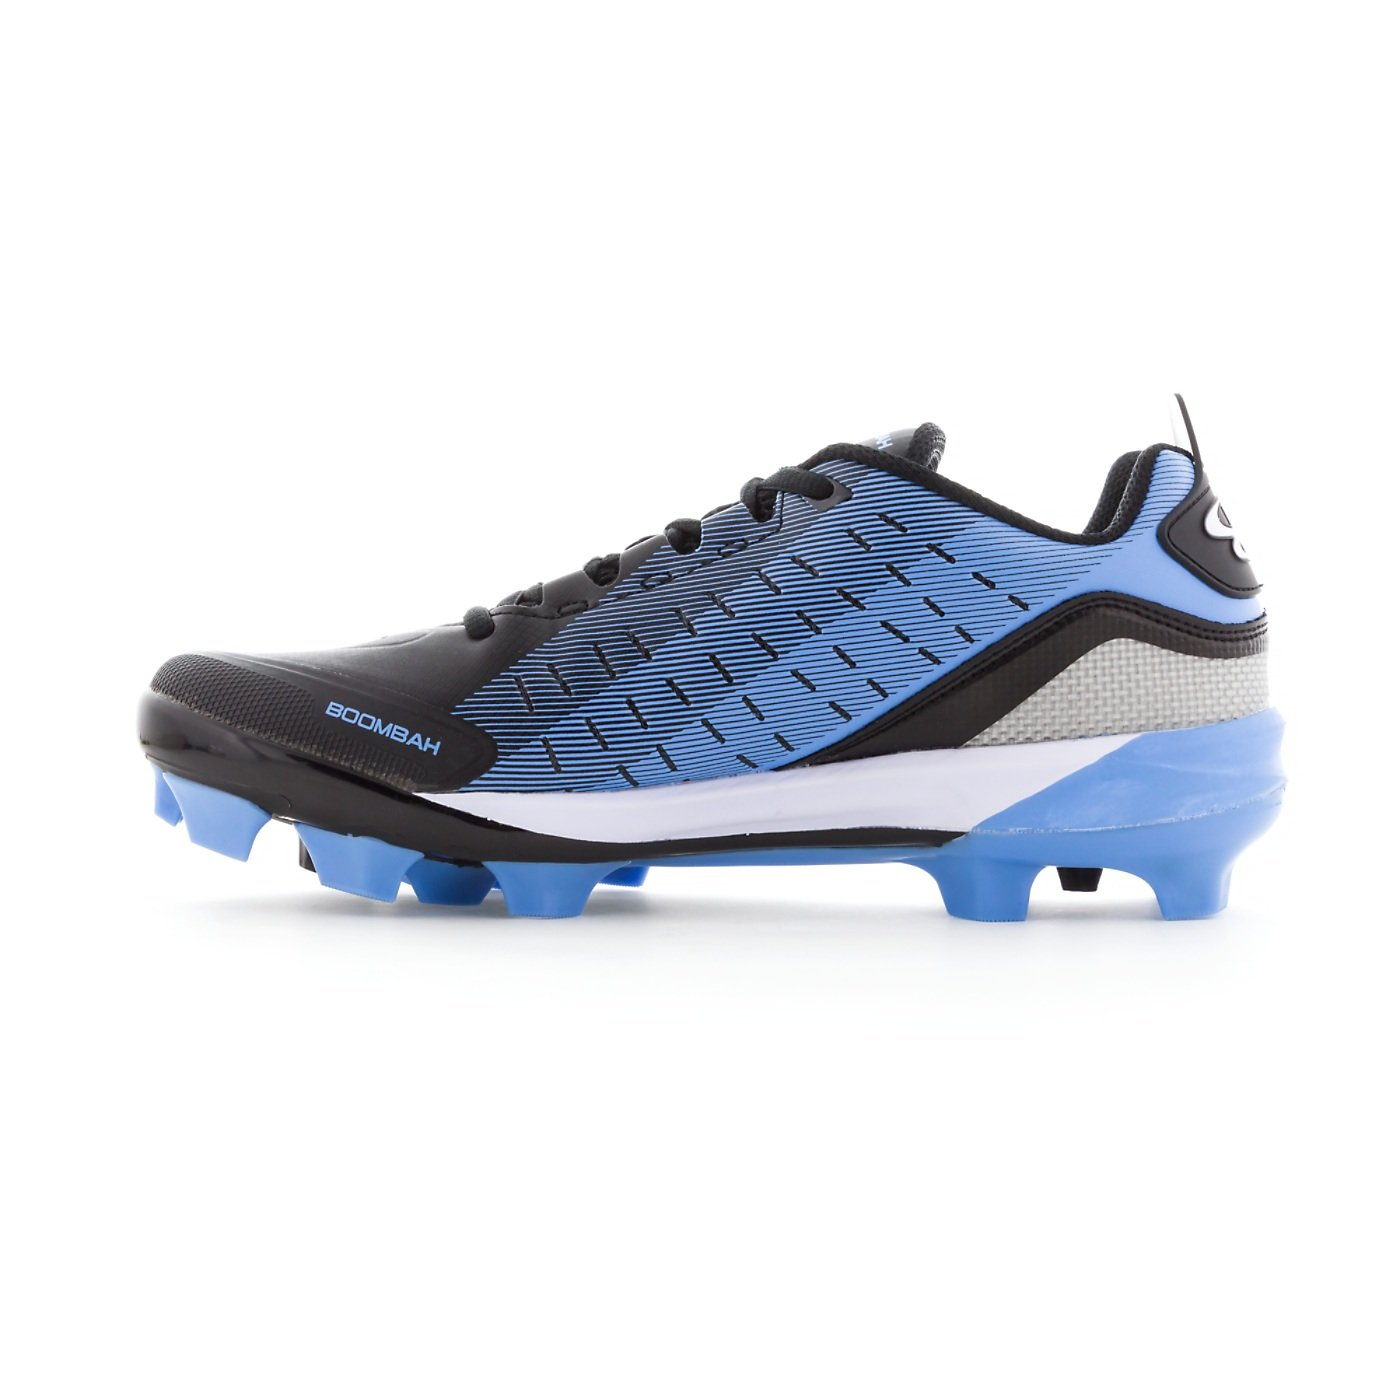 39e4628dac02 Amazon.com  Boombah Men s Catalyst Molded Cleats - 16 Color Options -  Multiple Sizes  Sports   Outdoors